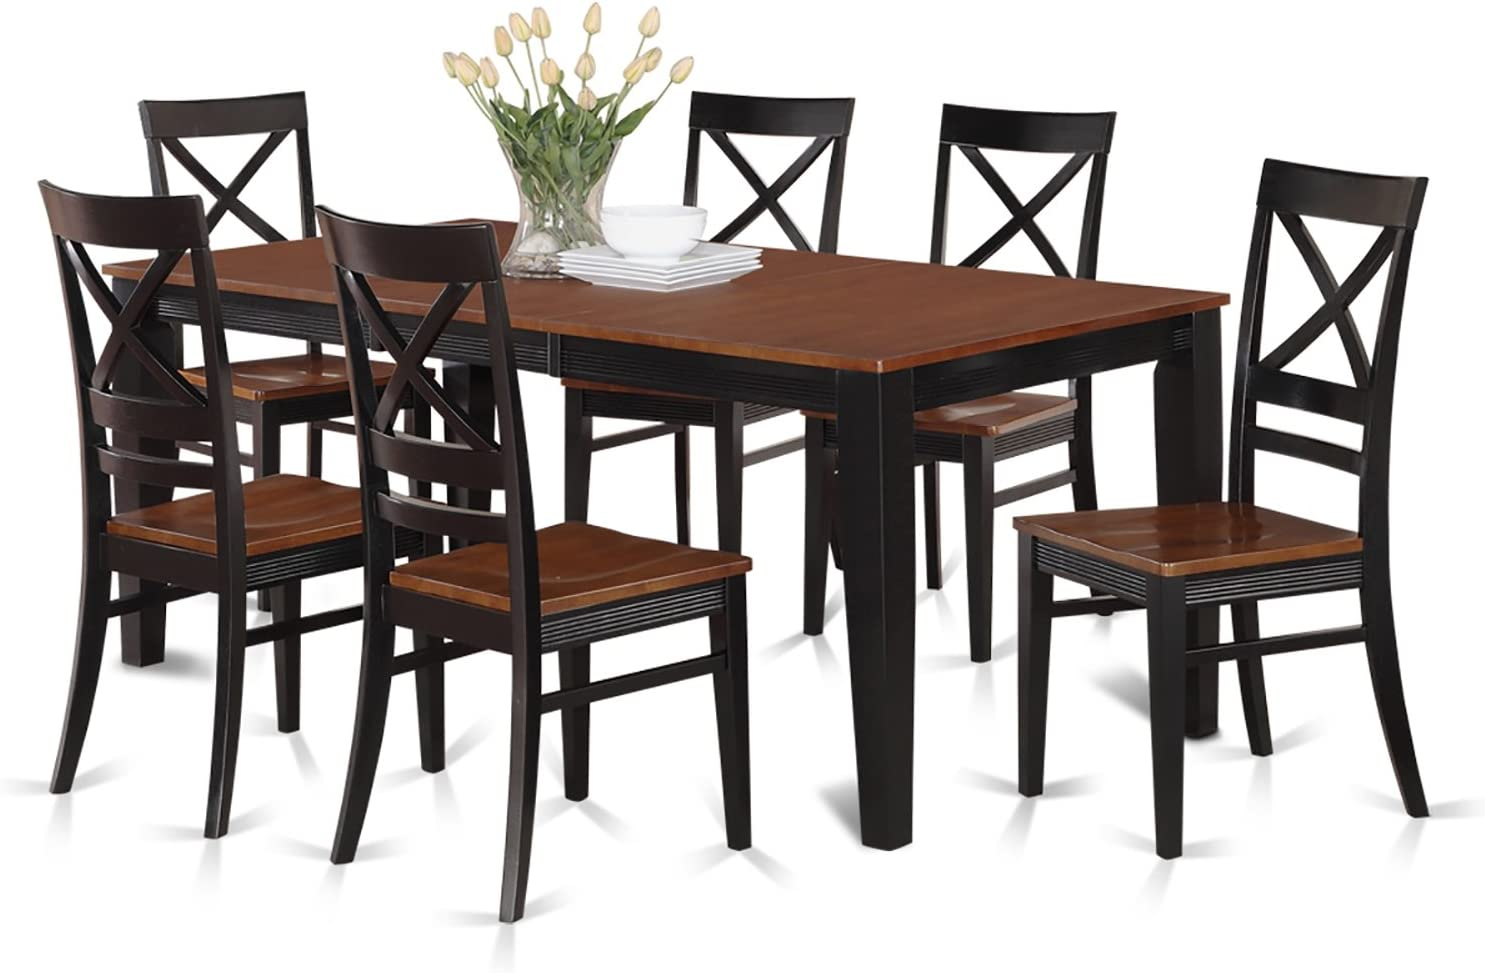 QUIN7-BLK-W 7 Pc Dining set-Table and 6 Kitchen Chairs